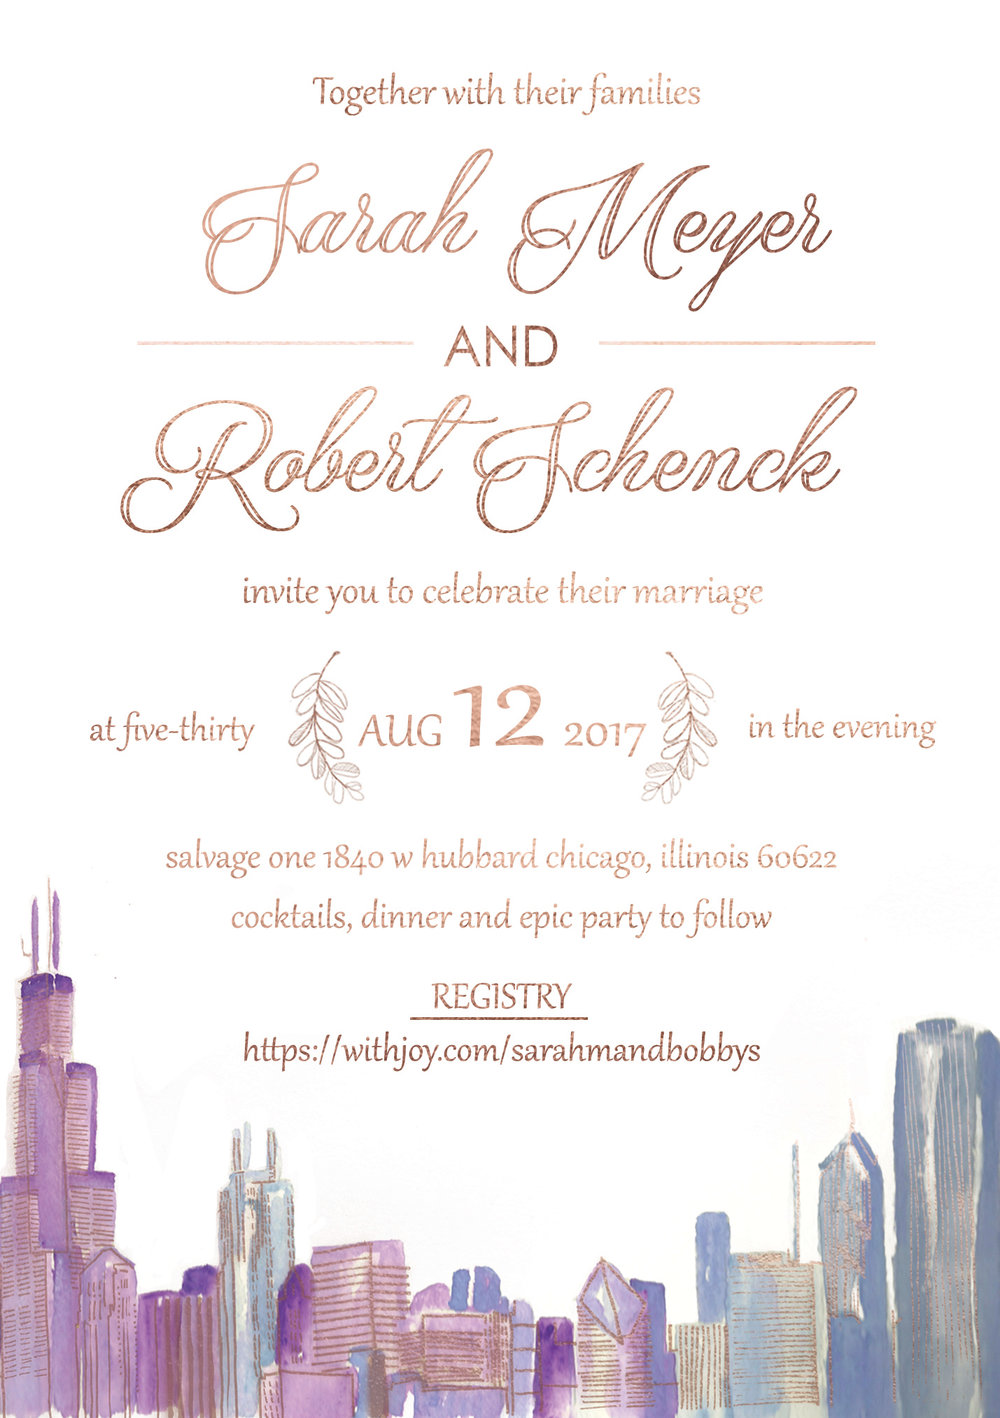 Schenck Wedding Invitation_5.25x7.25.jpg